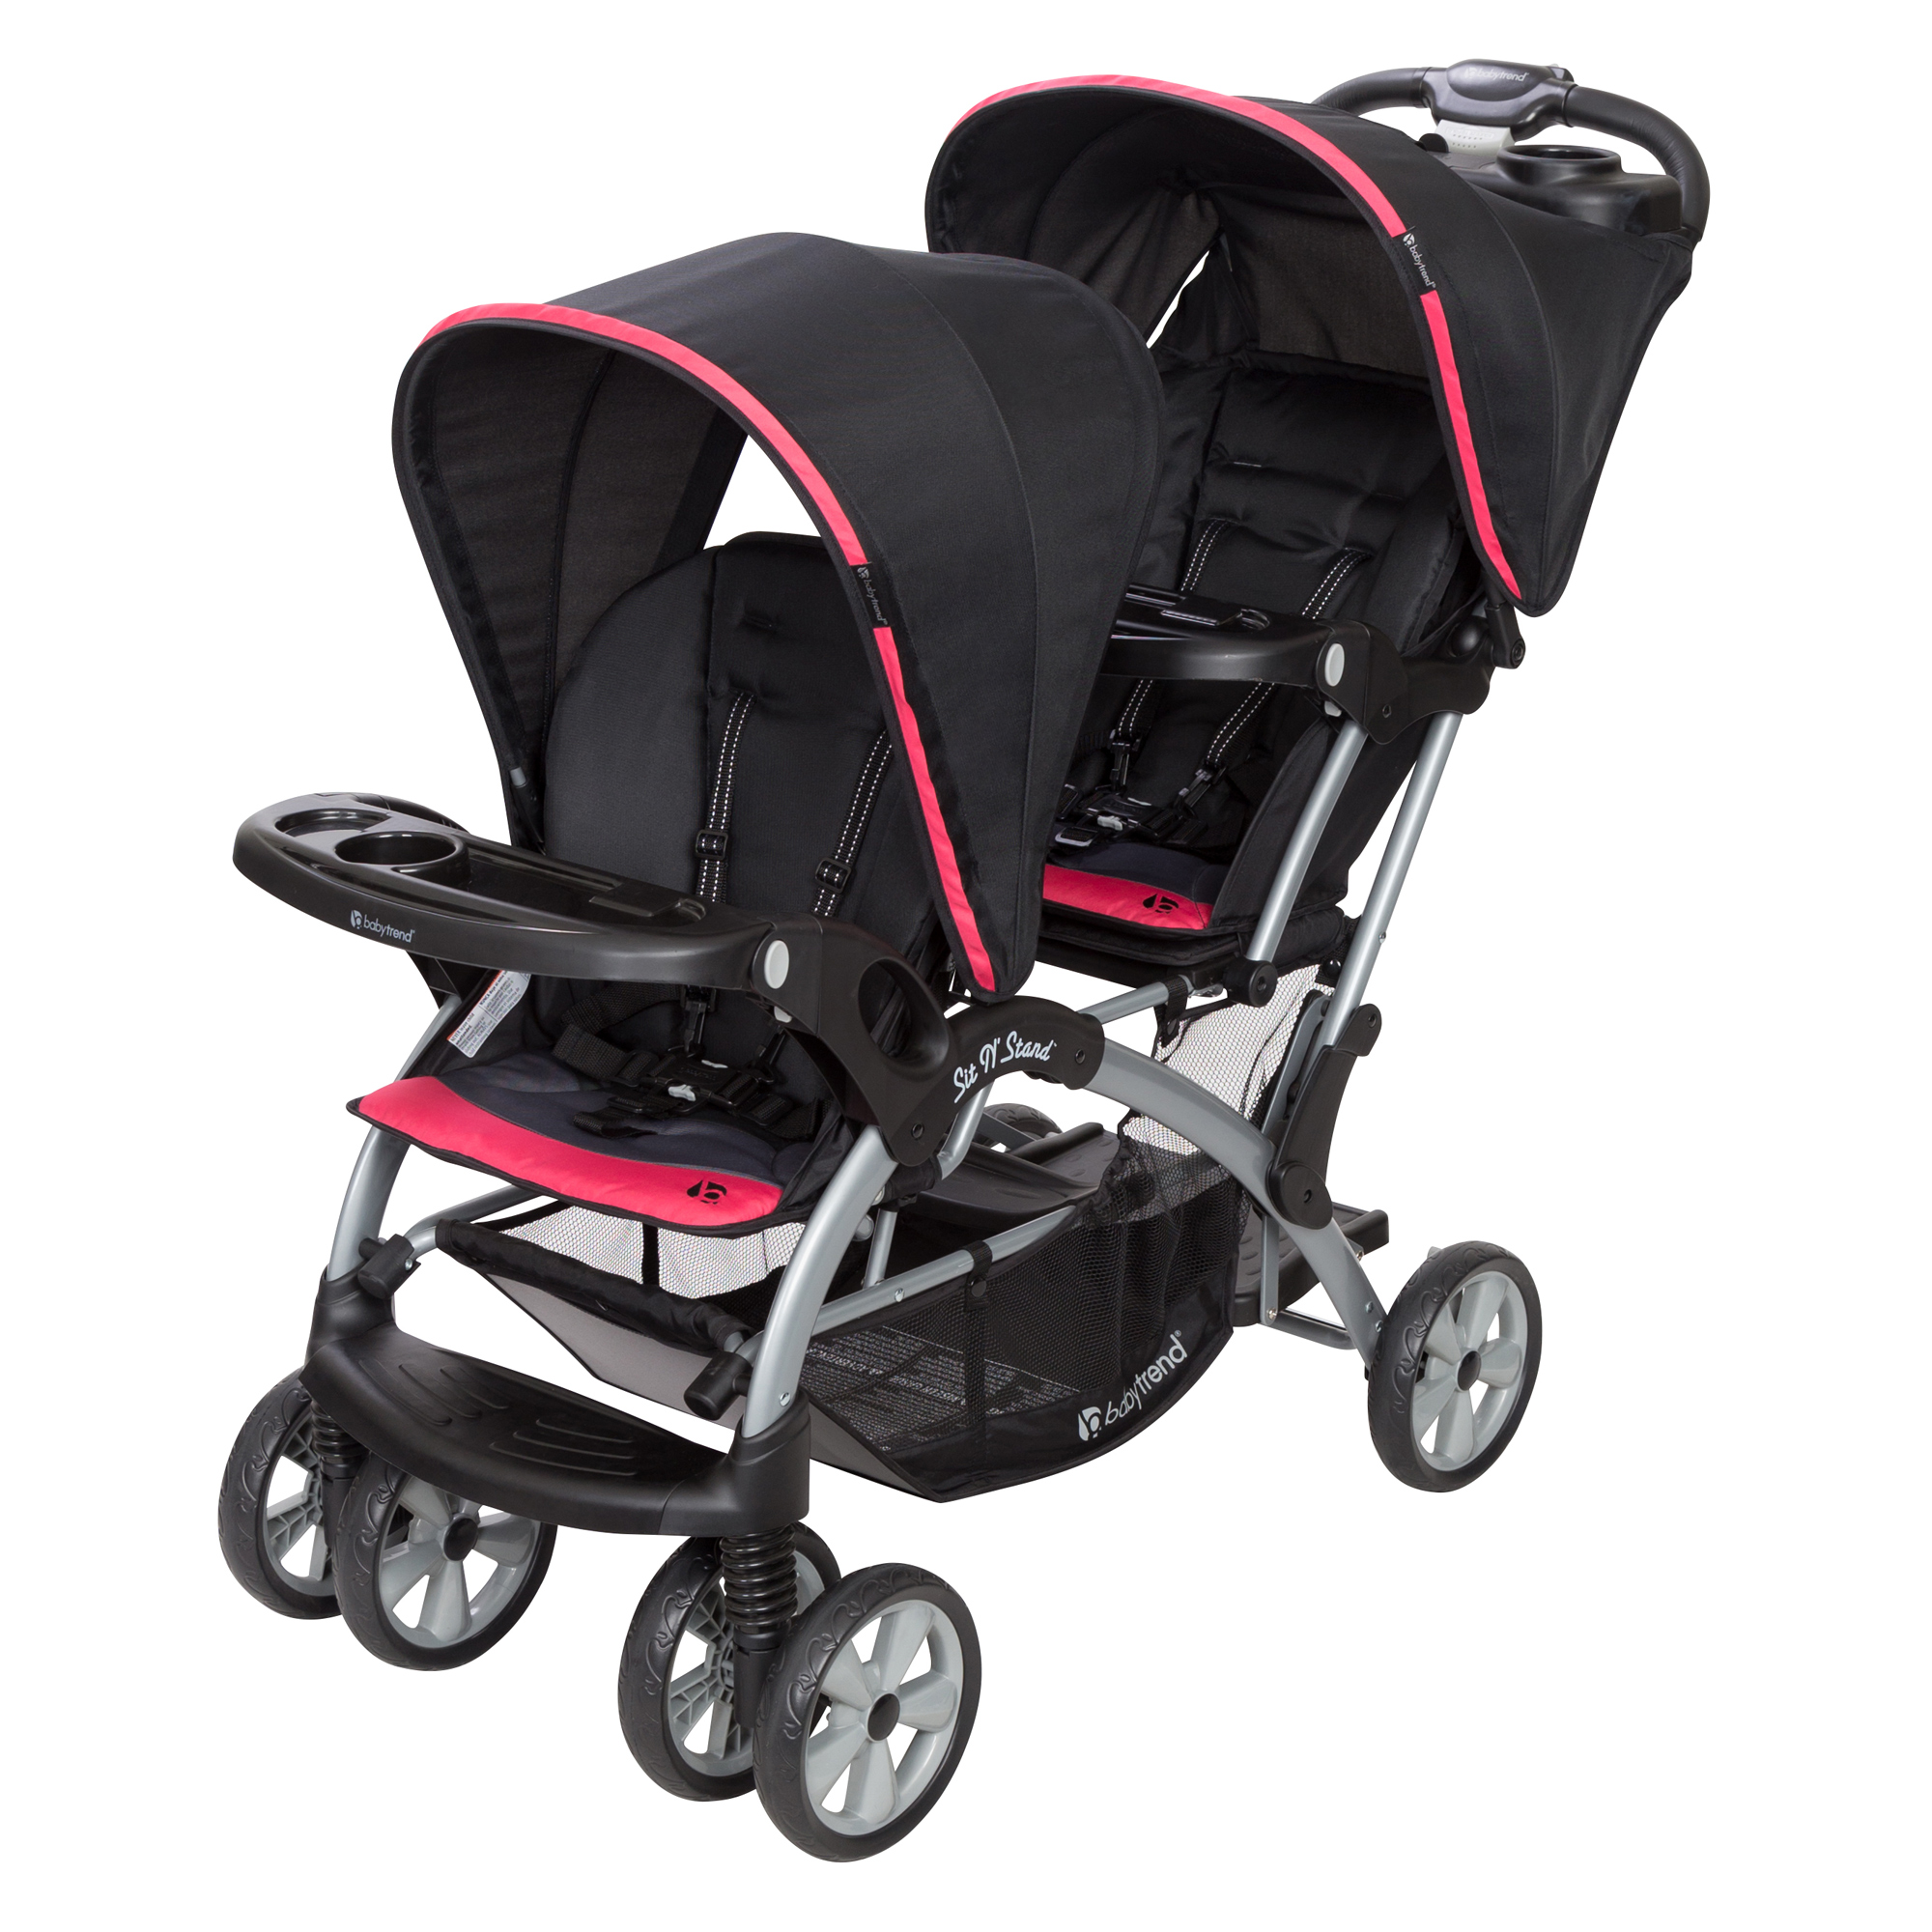 Baby Trend Sit N' Stand® Double- Optic Pink